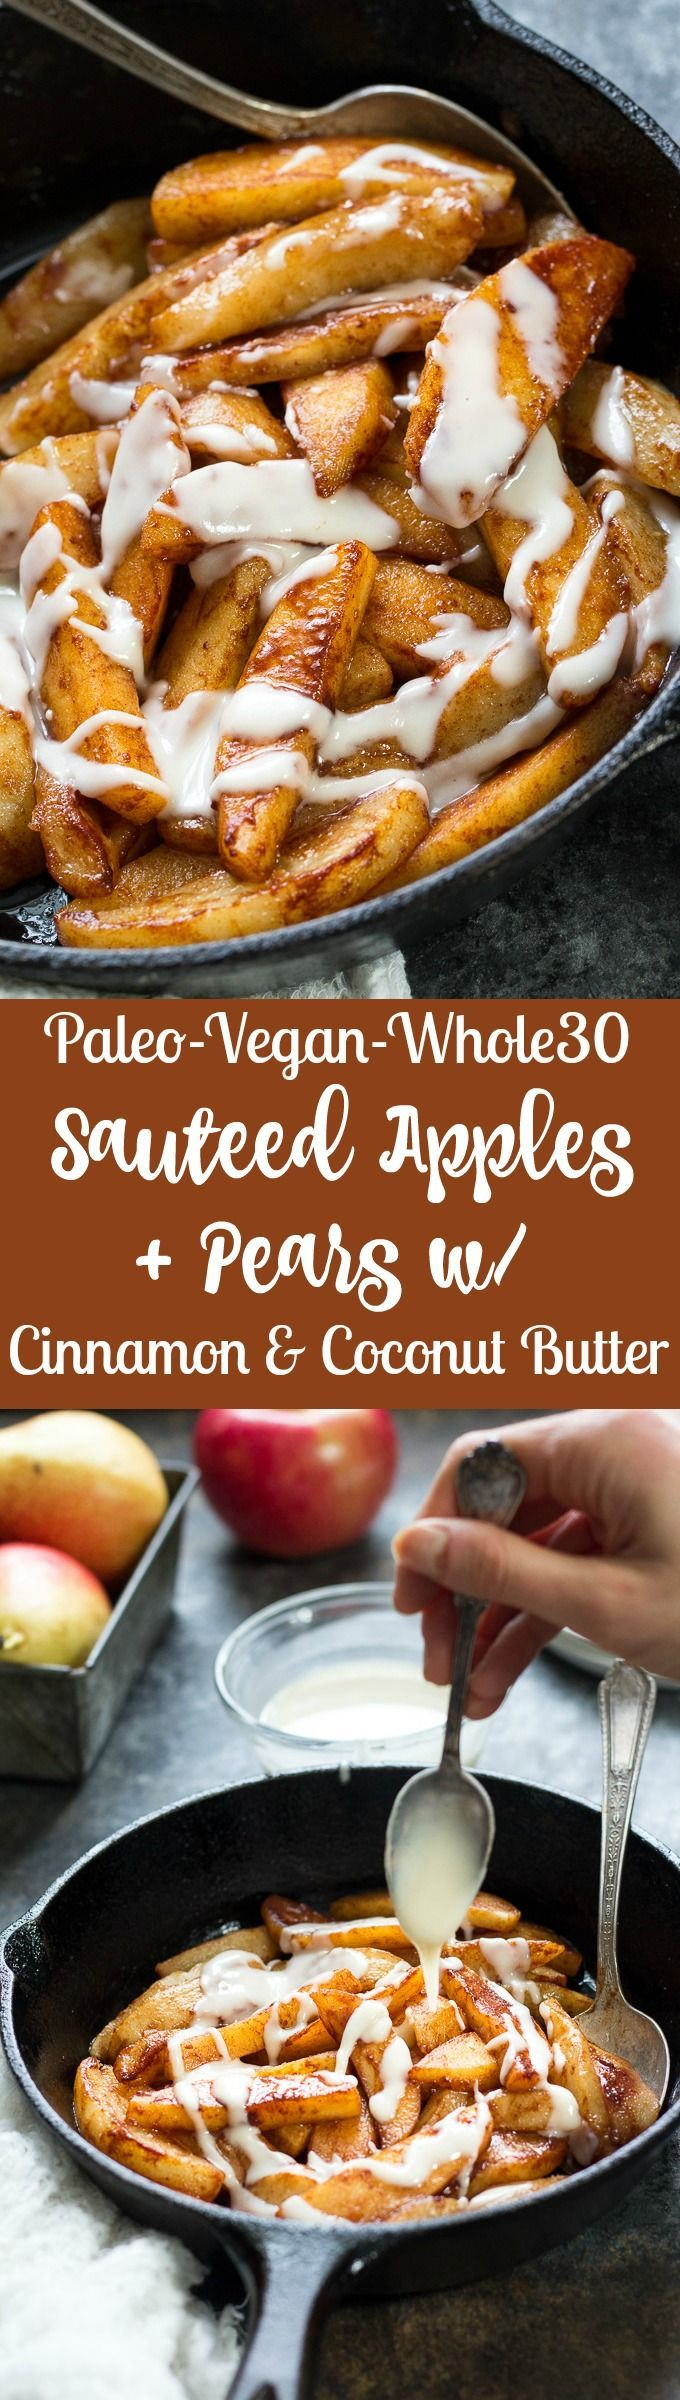 Incredibly easy and delicious Sautéed Apples & Pears with Cinnamon and Coconut Butter that's Paleo, Vegan, and Whole30 compliant. No added sugar or sweeteners, dairy free, gluten free.  http://recipesheaven.com/paleo